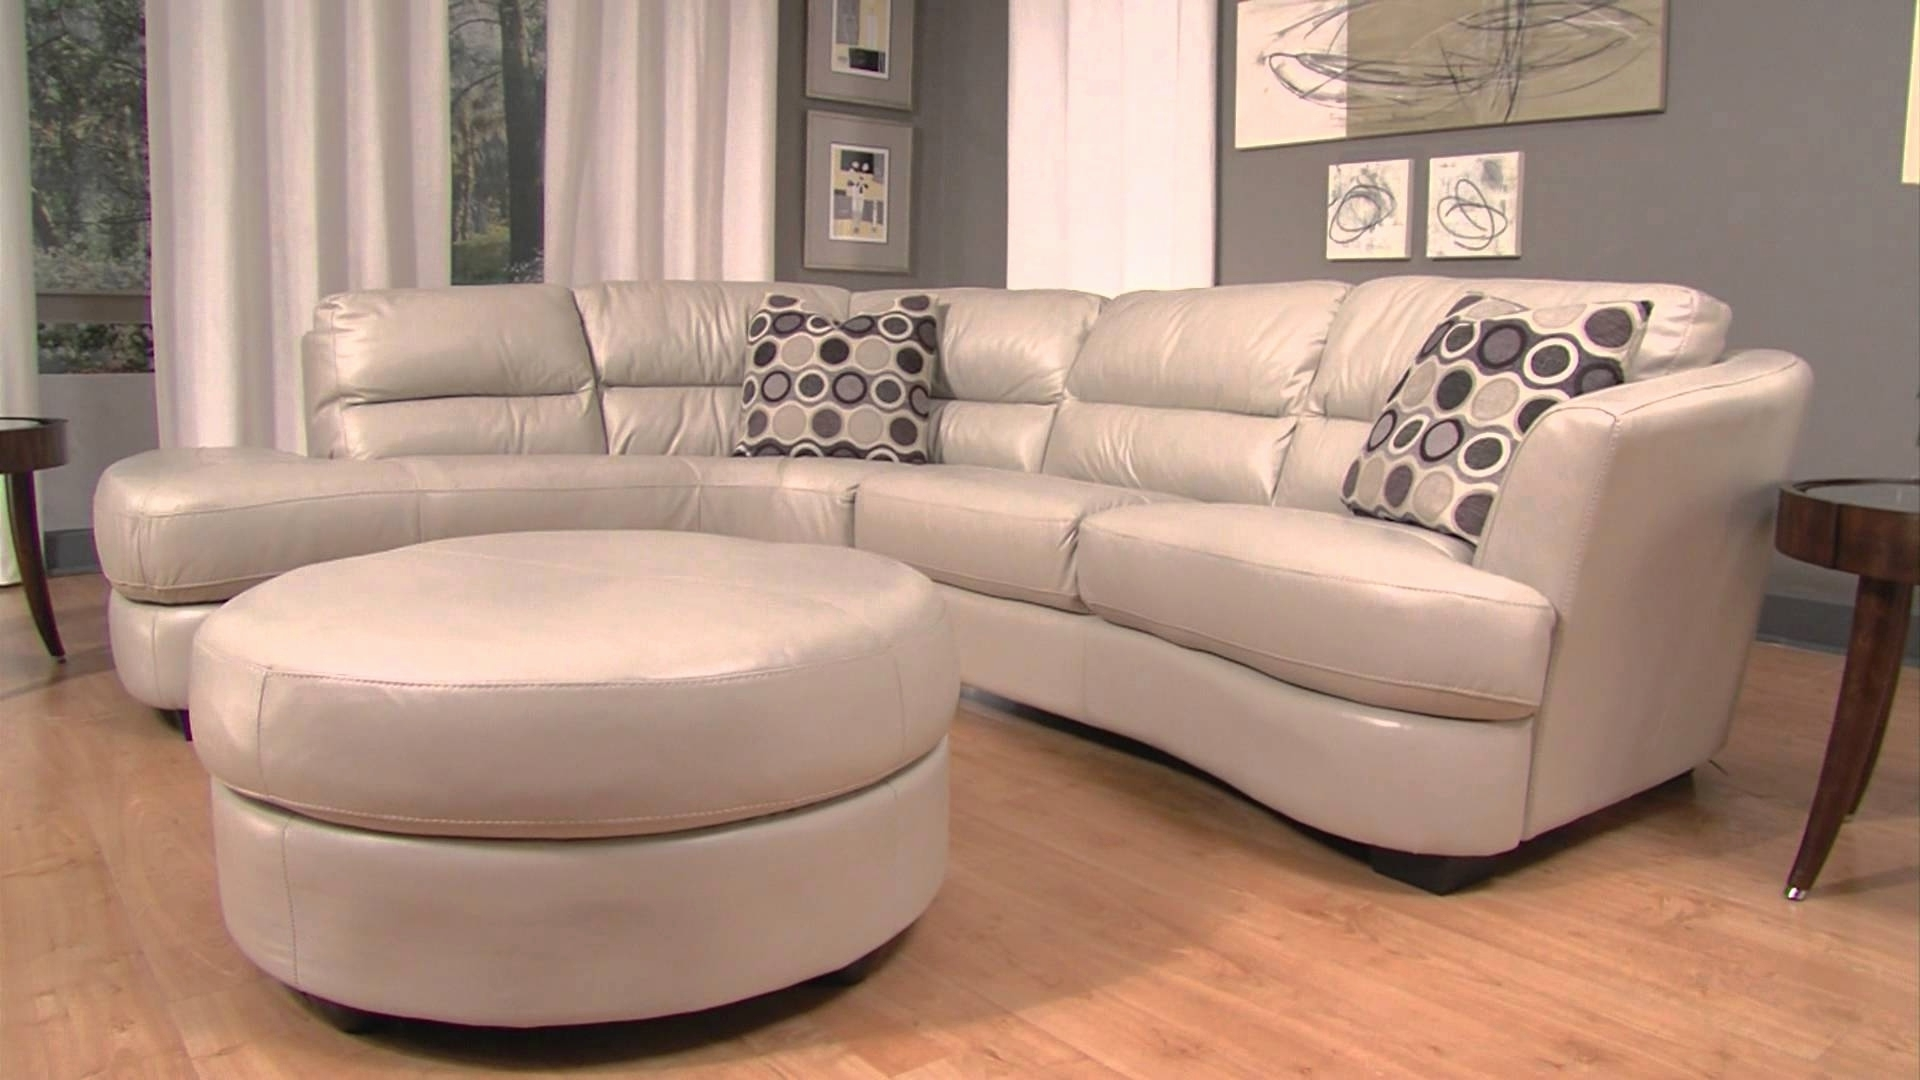 Widely Used Inspirational Natuzzi Sectional Sofa 2018 – Couches And Sofas Ideas Throughout Sectional Sofas At Chicago (View 14 of 15)